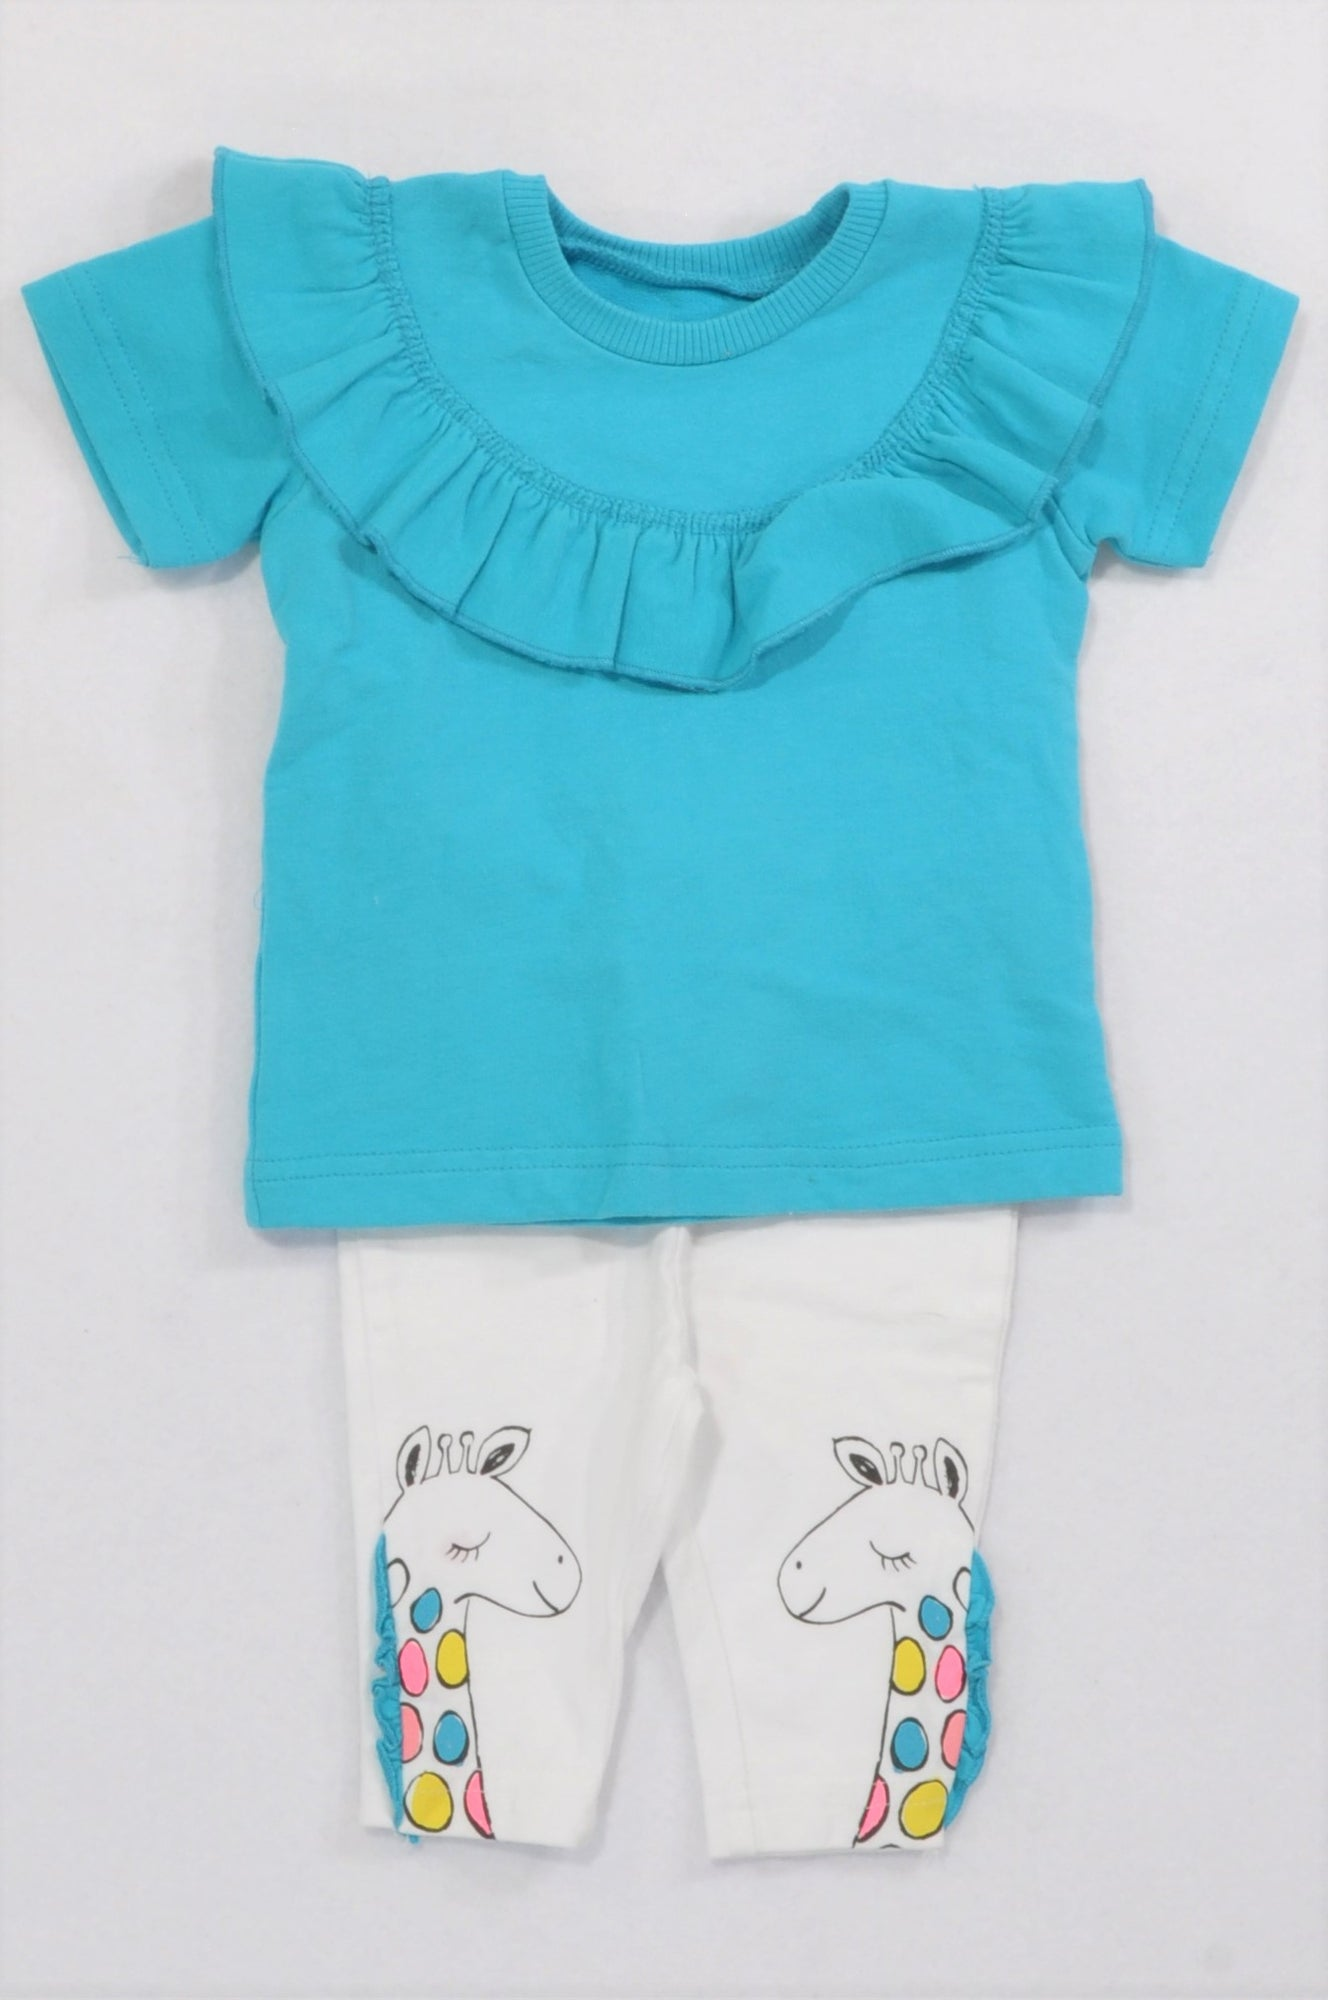 Woolworths Blue Frill Top & Giraffe Leggings Outfit Girls 0-3 months